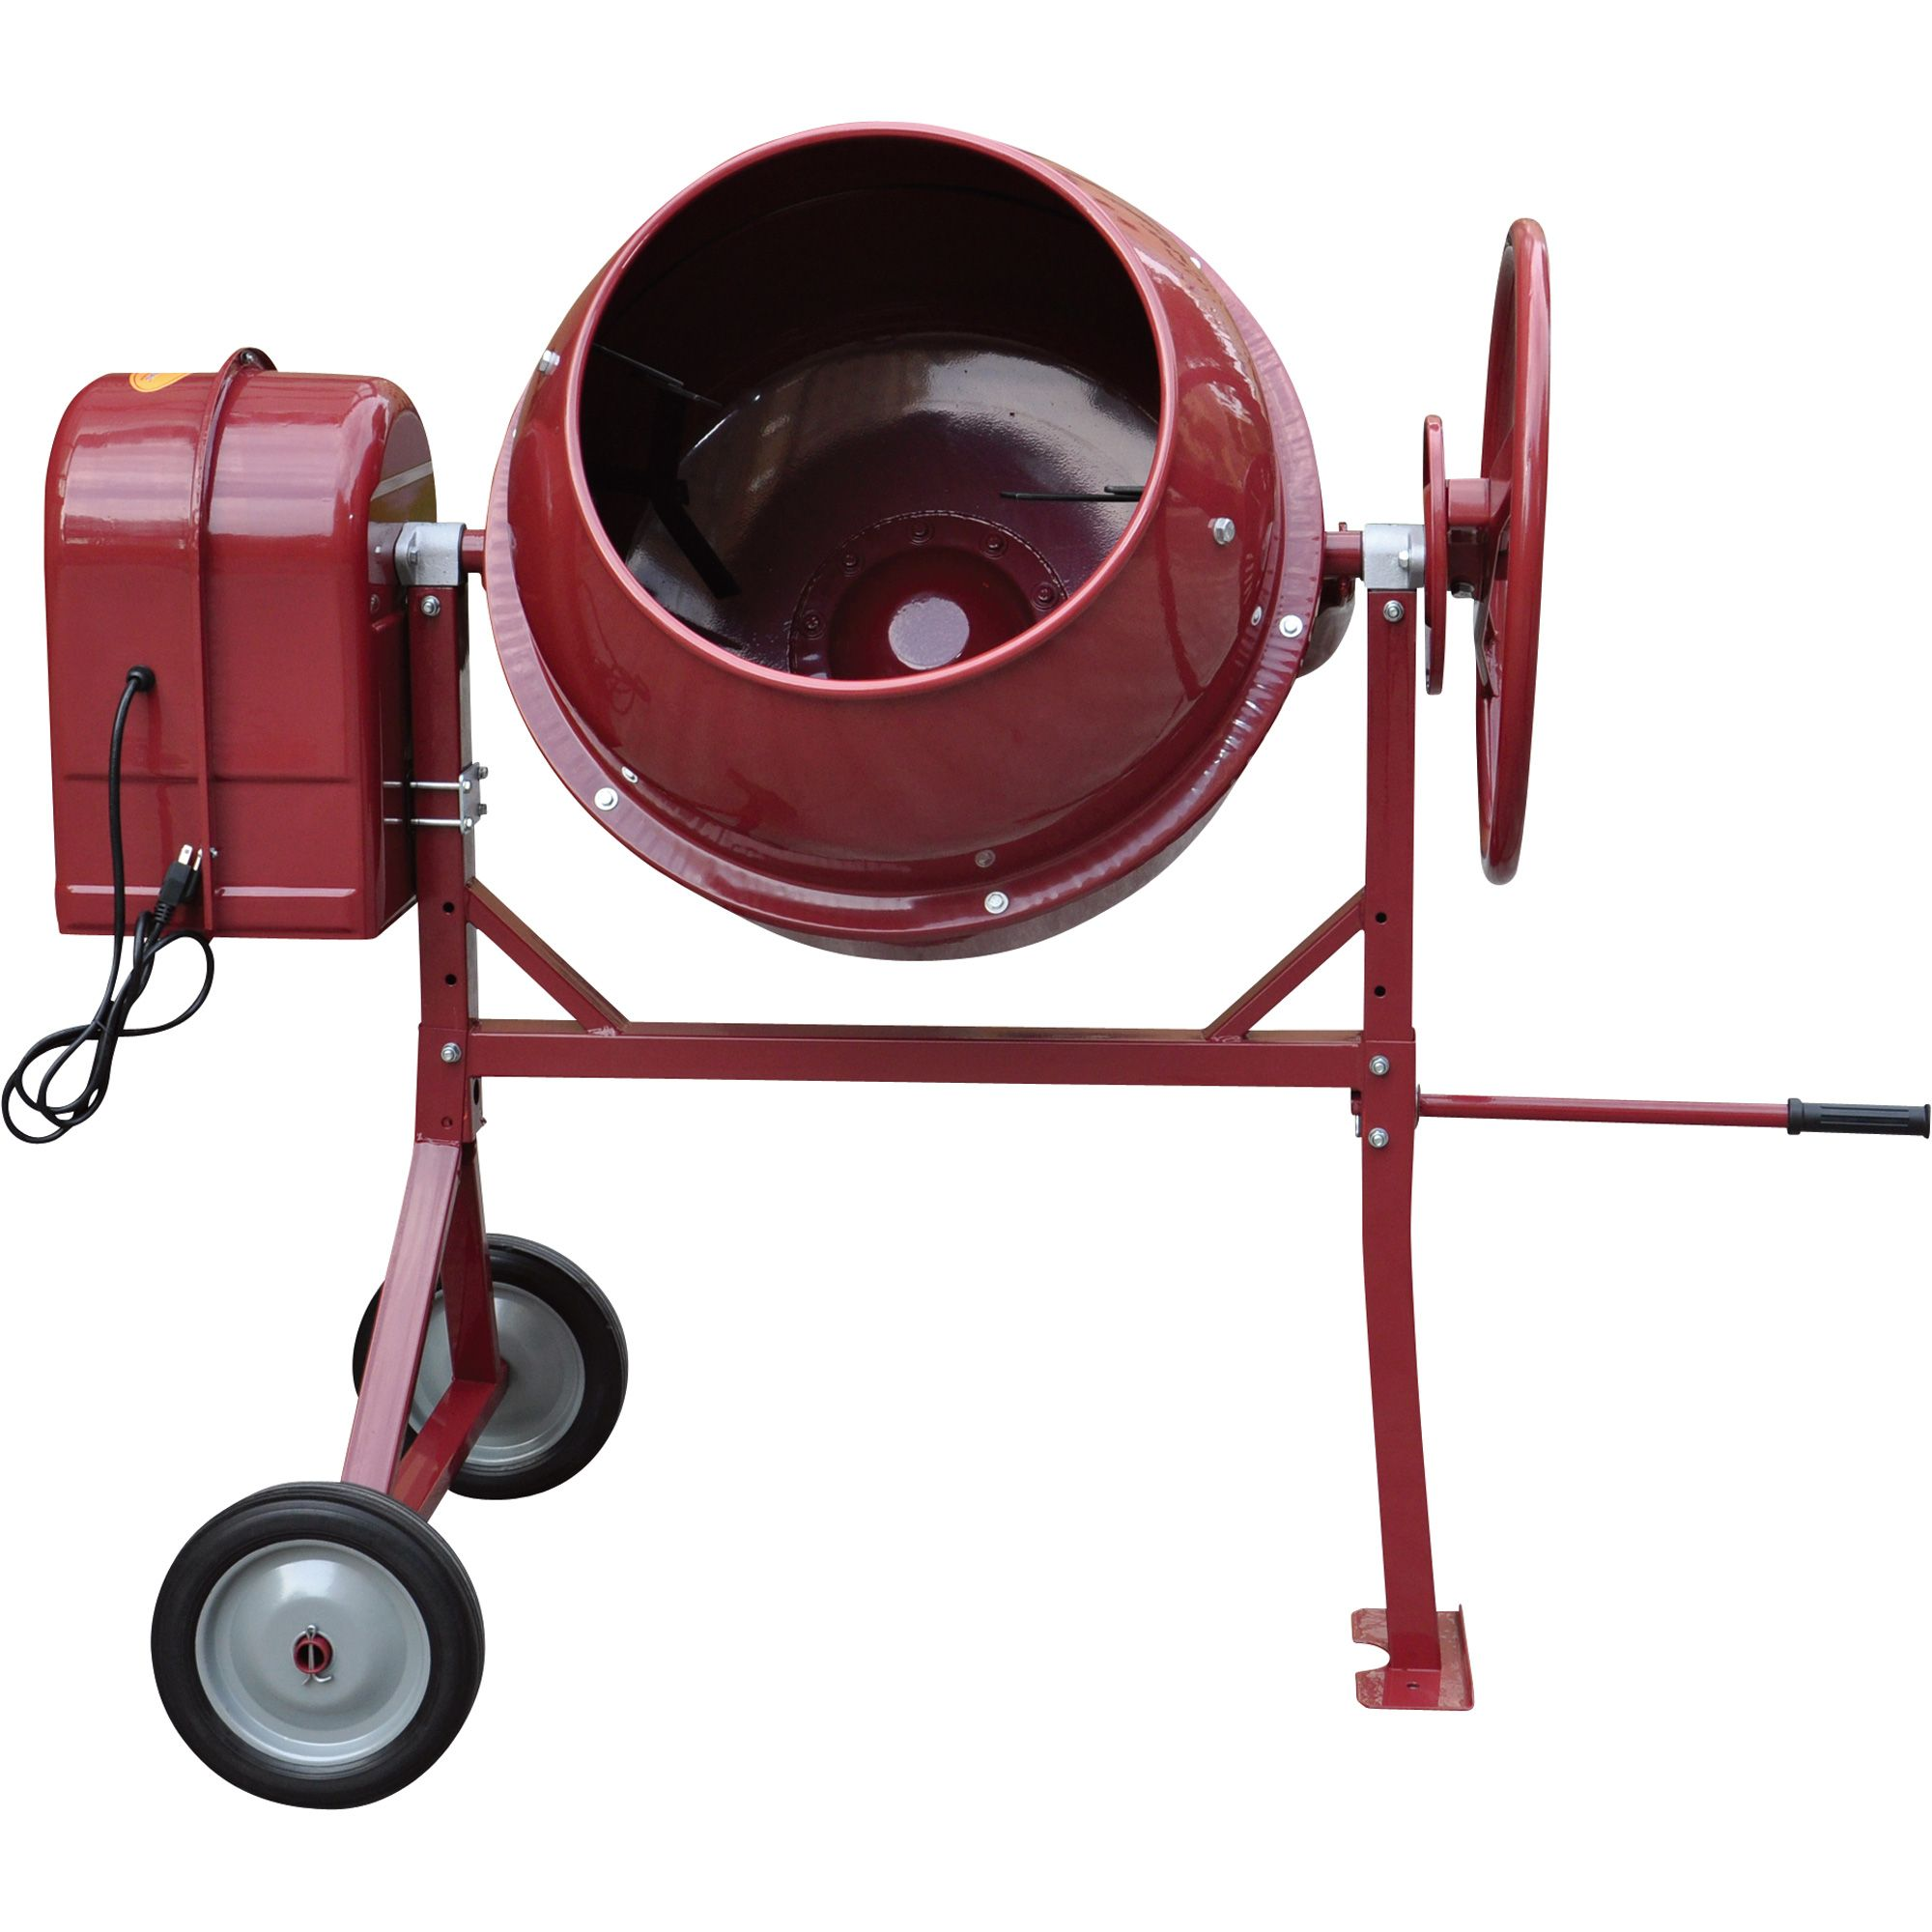 Northern Industrial Portable Electric Cement Mixer Total Drum Volume 4 10 Cubic Feet Wet Material Volume 1 94 Cubic Cement Mixers Construction Tools Tools